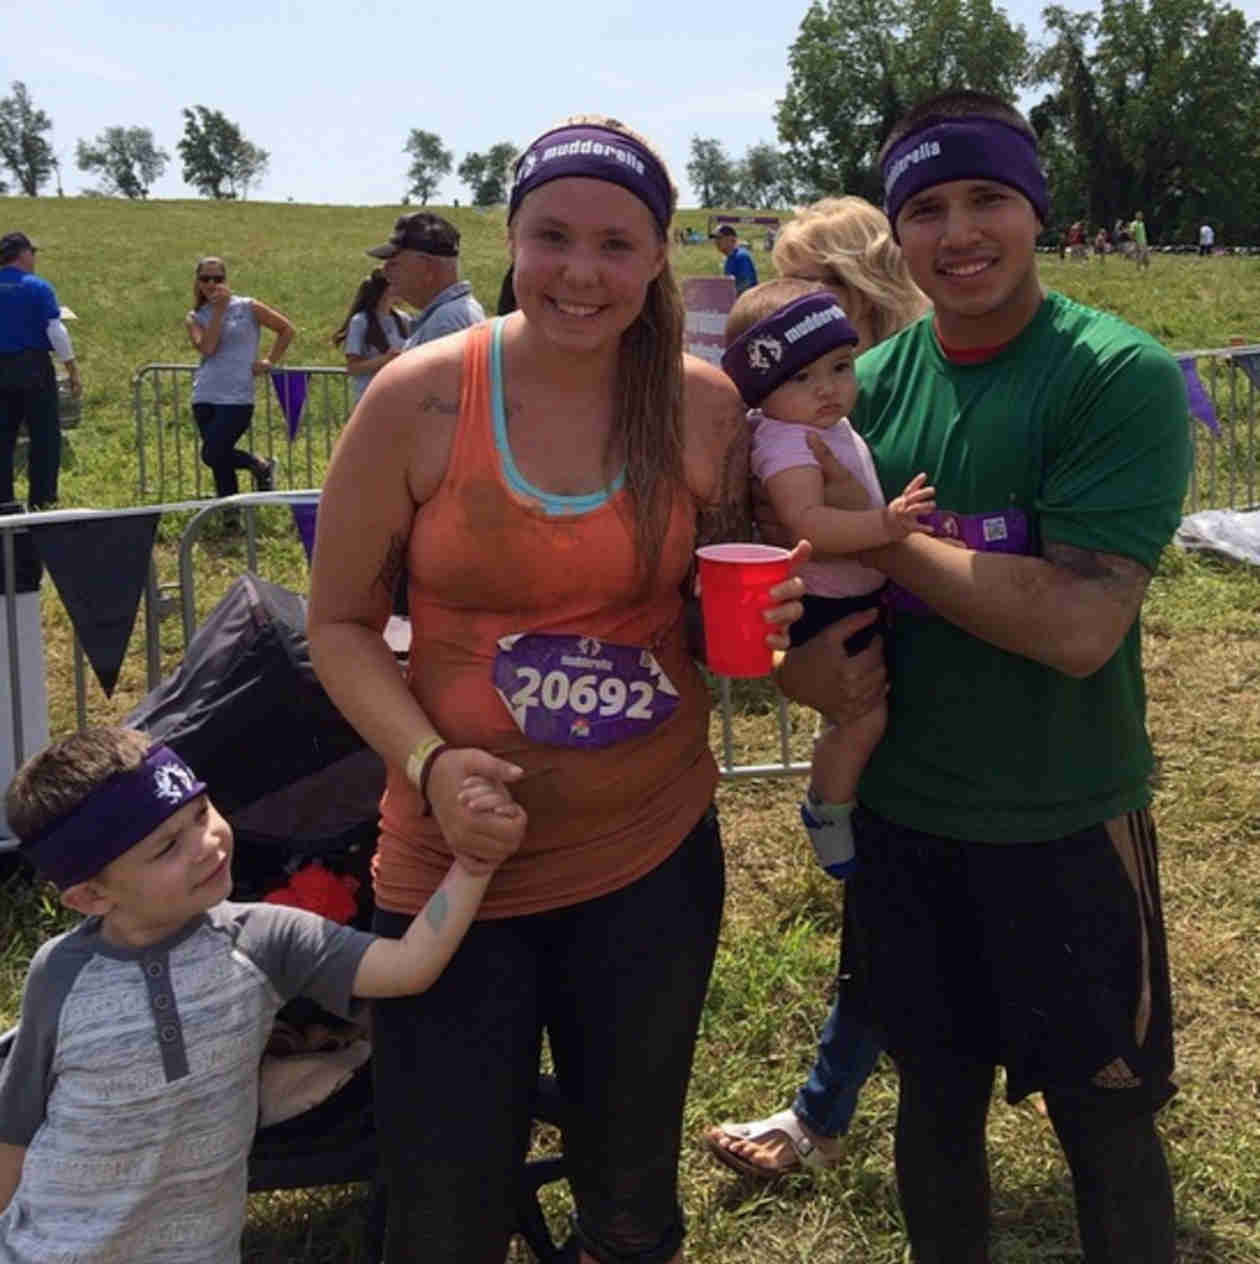 Kailyn Lowry Shows Off Her Slimmed-Down Body at Mudderella! (PHOTO)